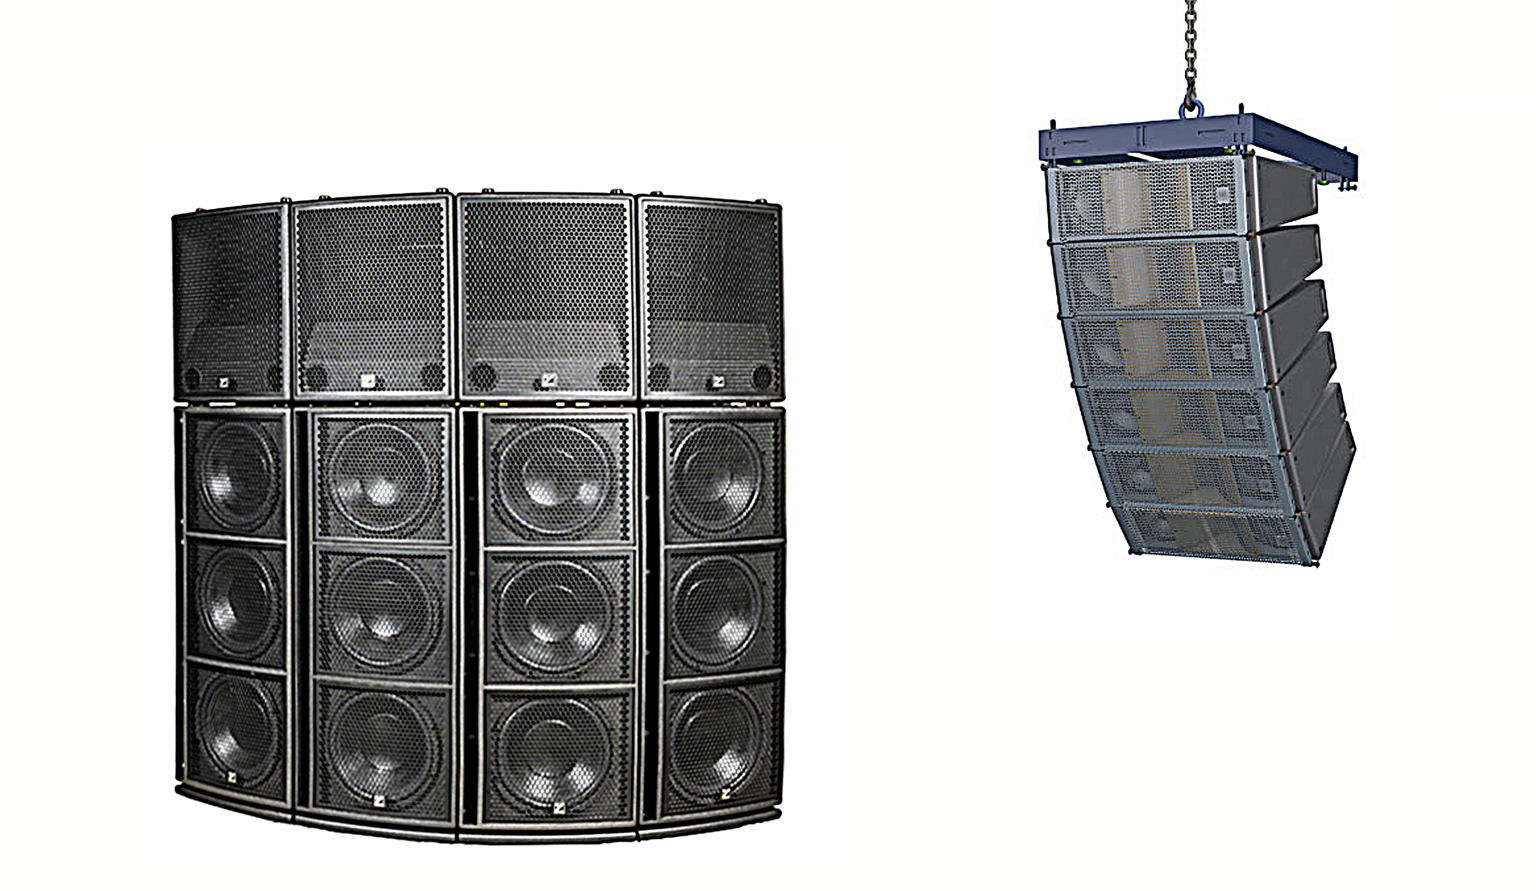 Yorkville Synergy (left) and HK Audio Cosmo line array at right